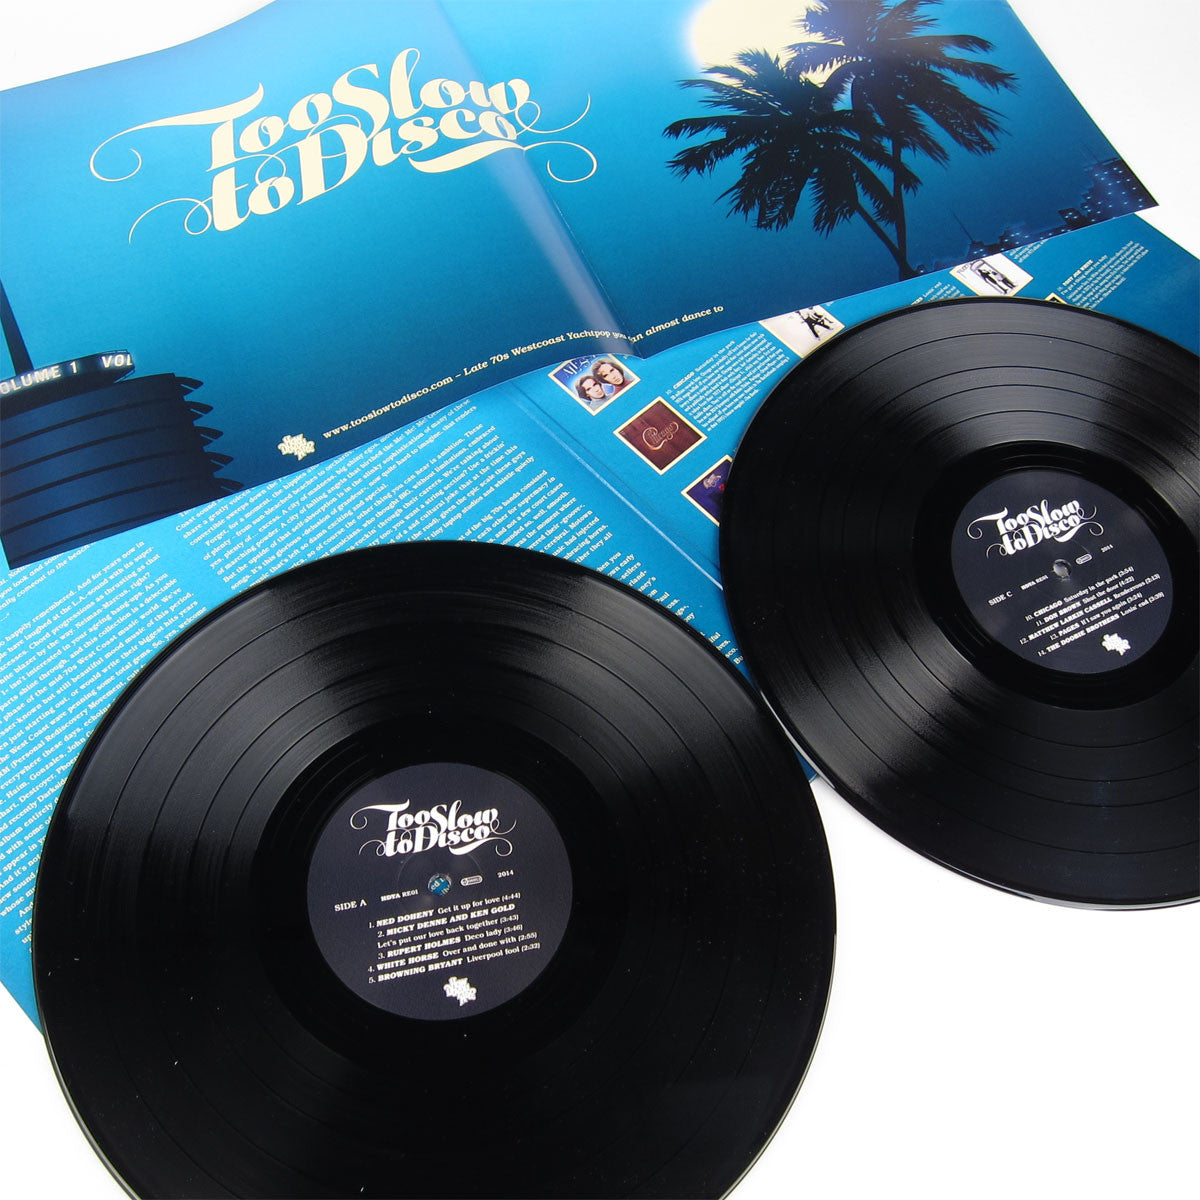 How Do You Are? Recordings: Too Slow To Disco (180g, Poster, Free MP3) Vinyl 2LP detail